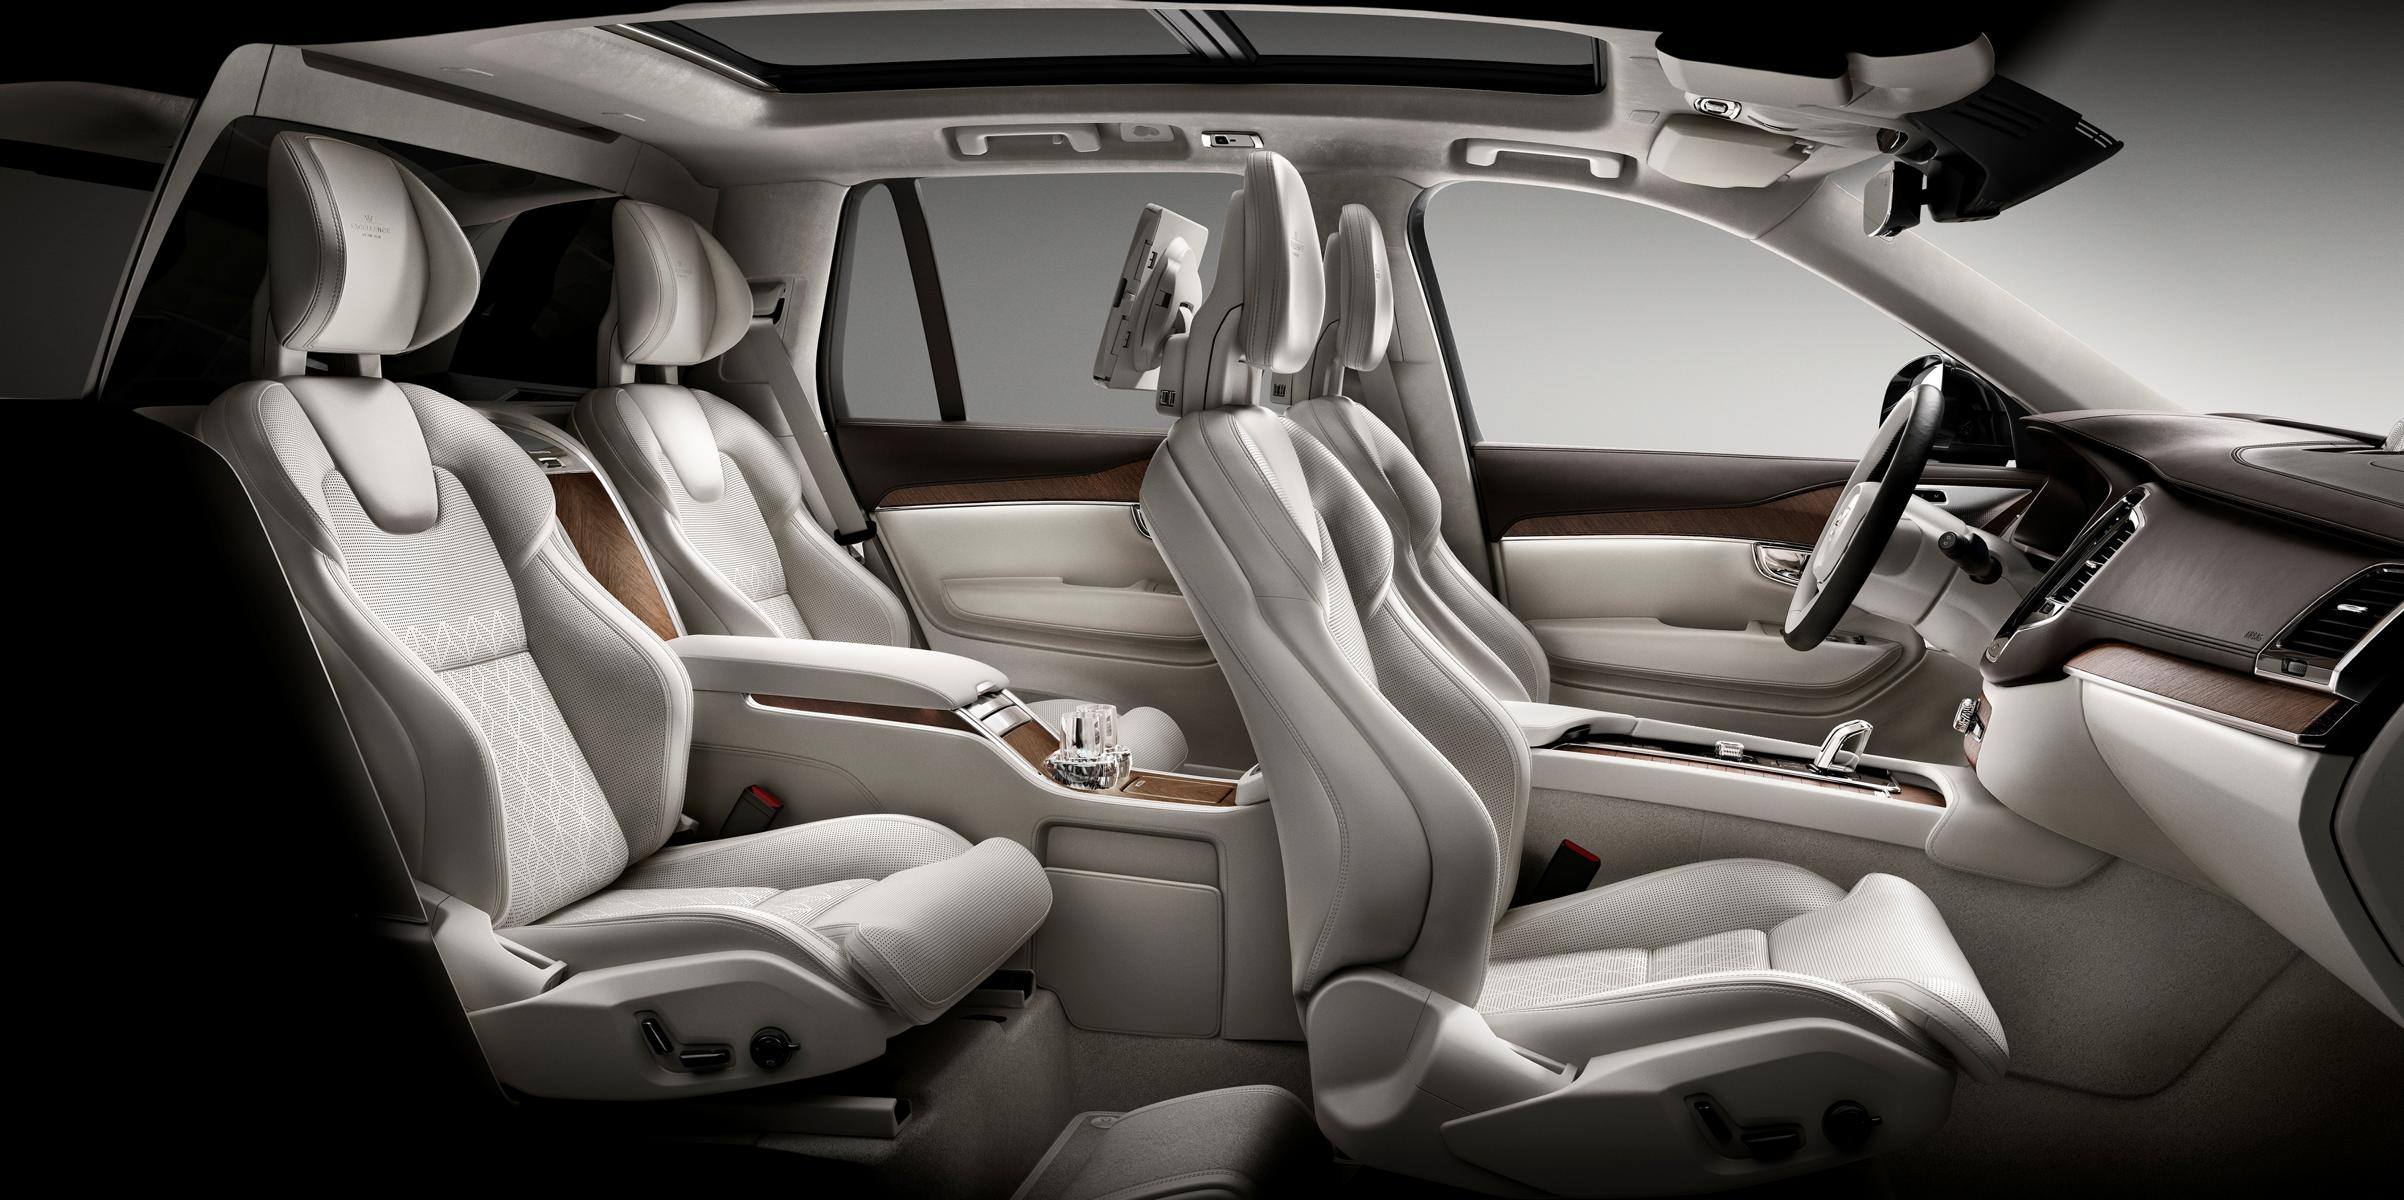 Volvo Interieur Unterwegs In Der First Class Volvo Xc90 Excellence Bietet